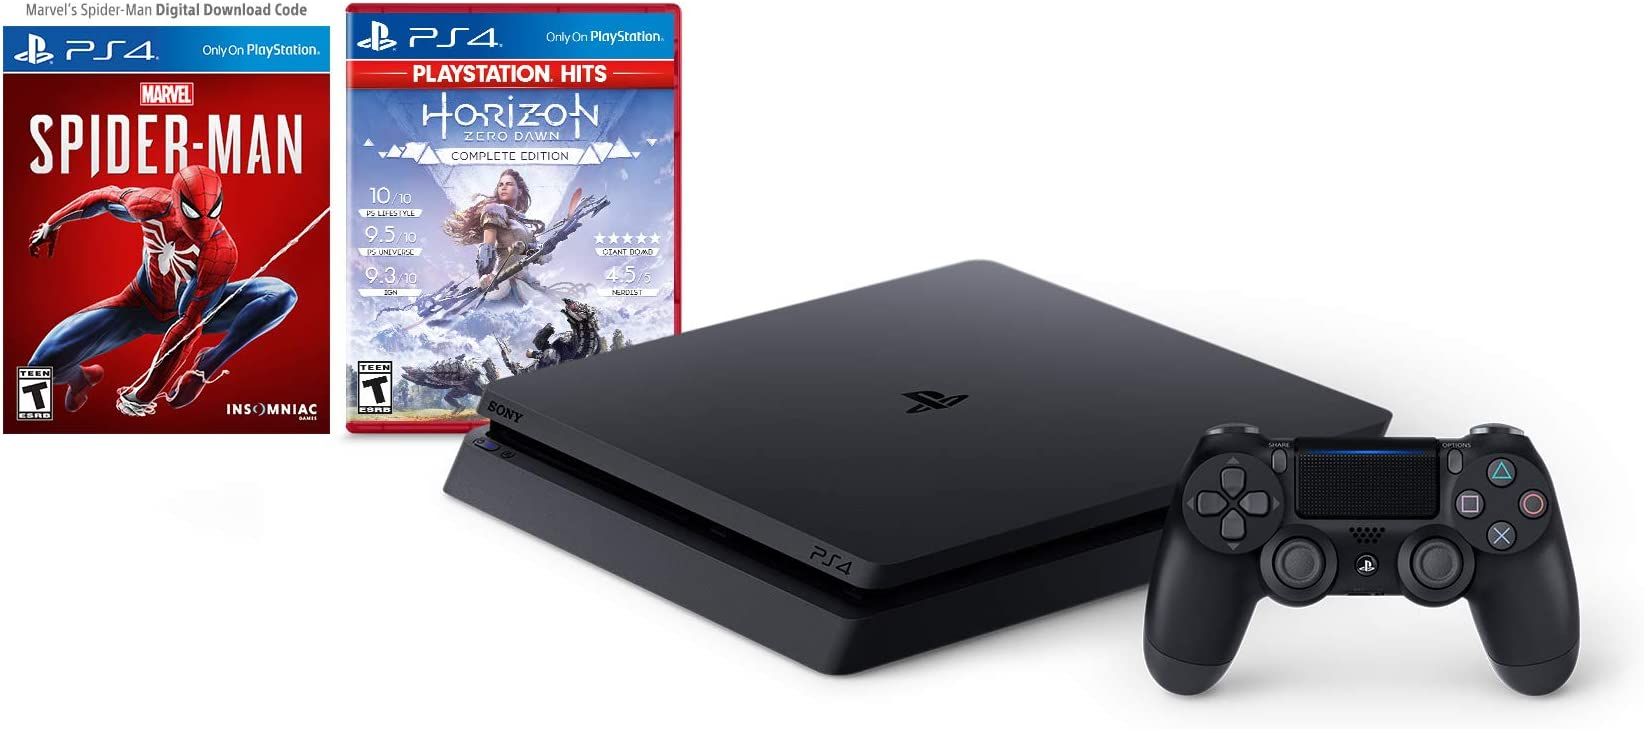 Play Station 4 Slim 1 Tb Console   Marvel's Spider Man [Digital Code] + Horizon Zero Dawn Complete Edition Hits Bundle by By          Sony